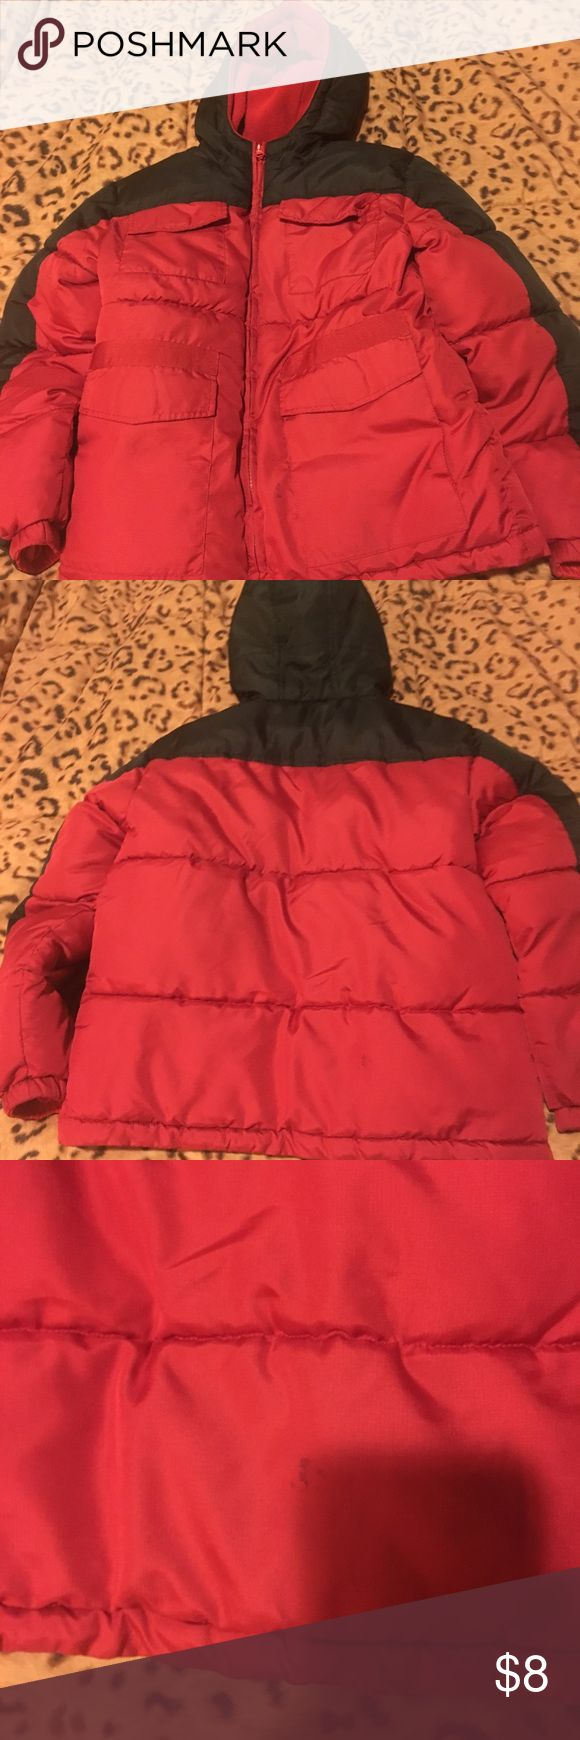 Boys jacket Boys jacket Faded glory size 8 Has some black spots on front and some on back not bad but just wanted to point out see pictures Jackets & Coats